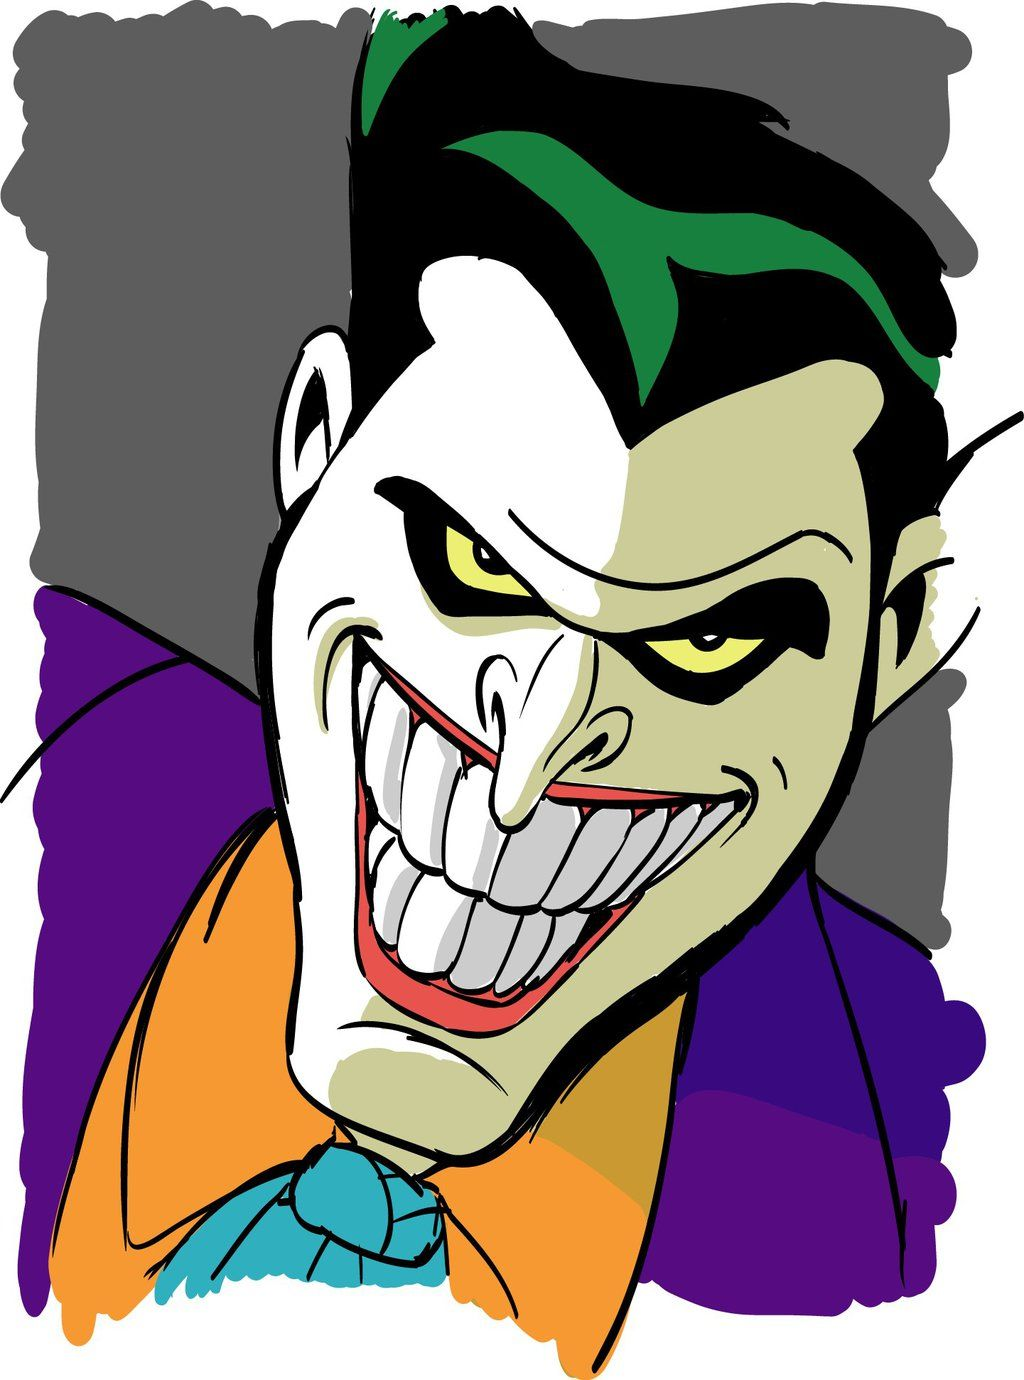 Cartoon jpeg clip art. Joker clipart